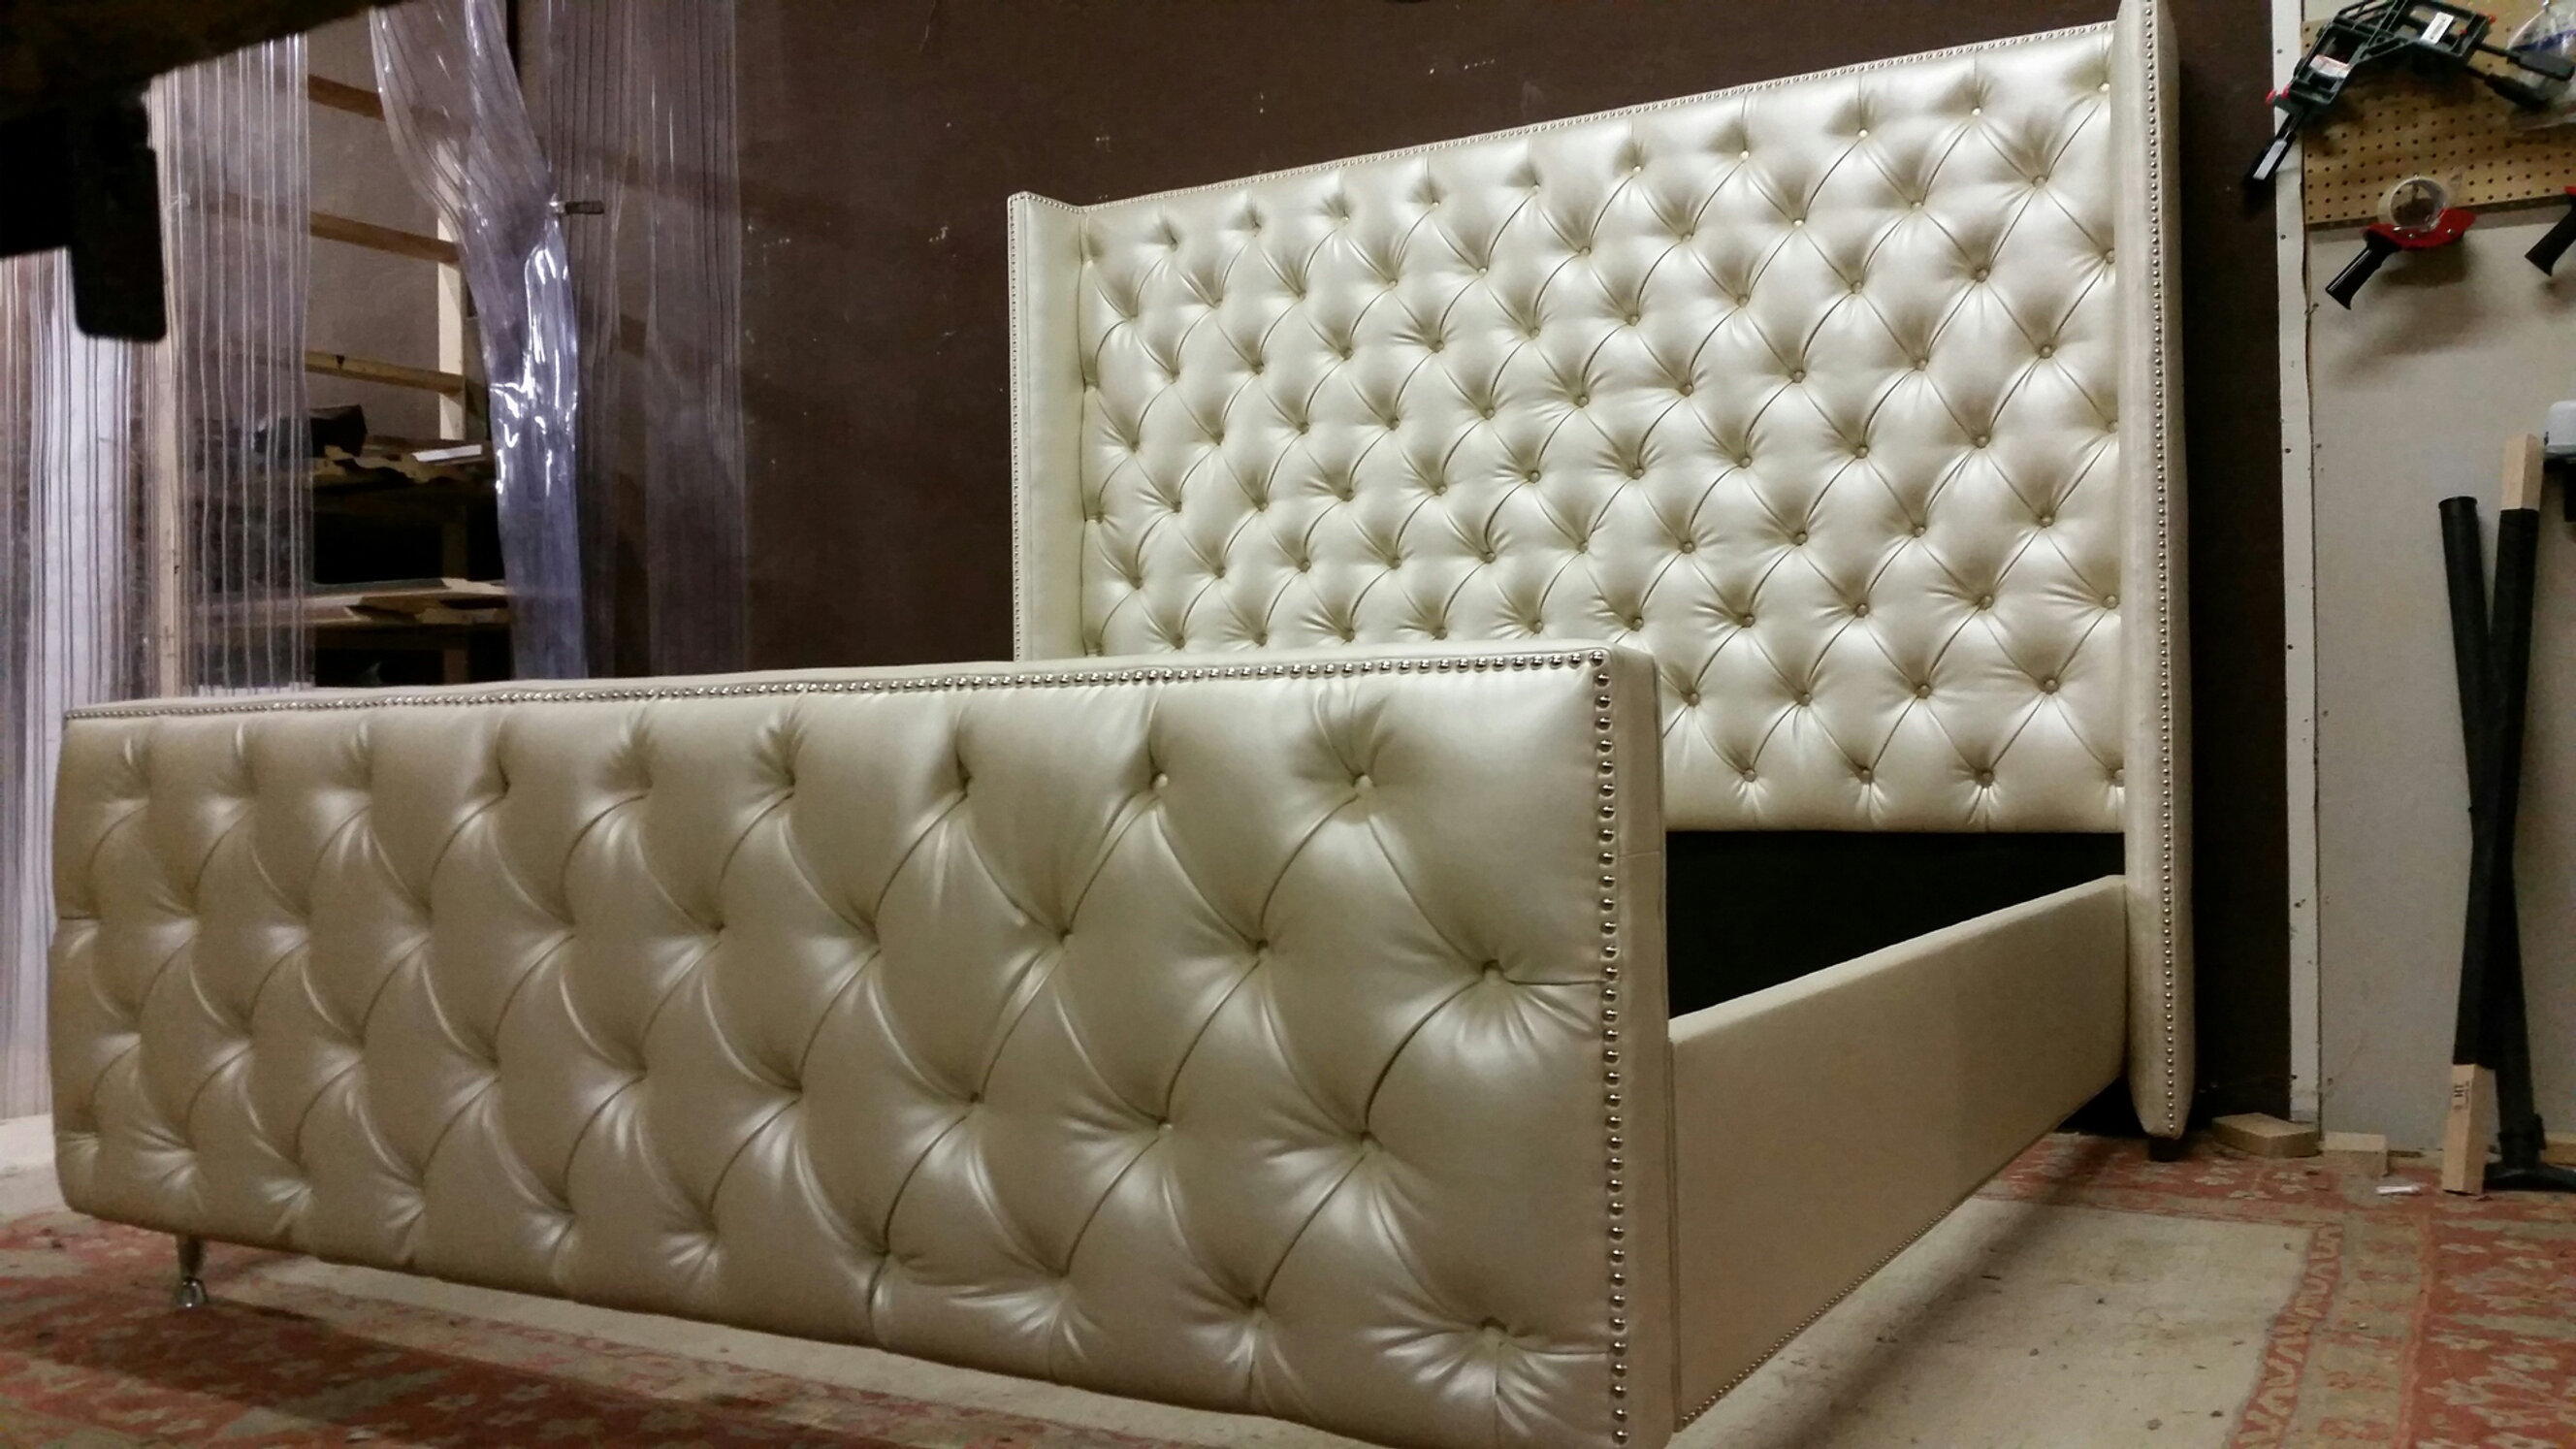 The Wilson 84 Quot Tall Tufted Shelter Wingback Headboard And